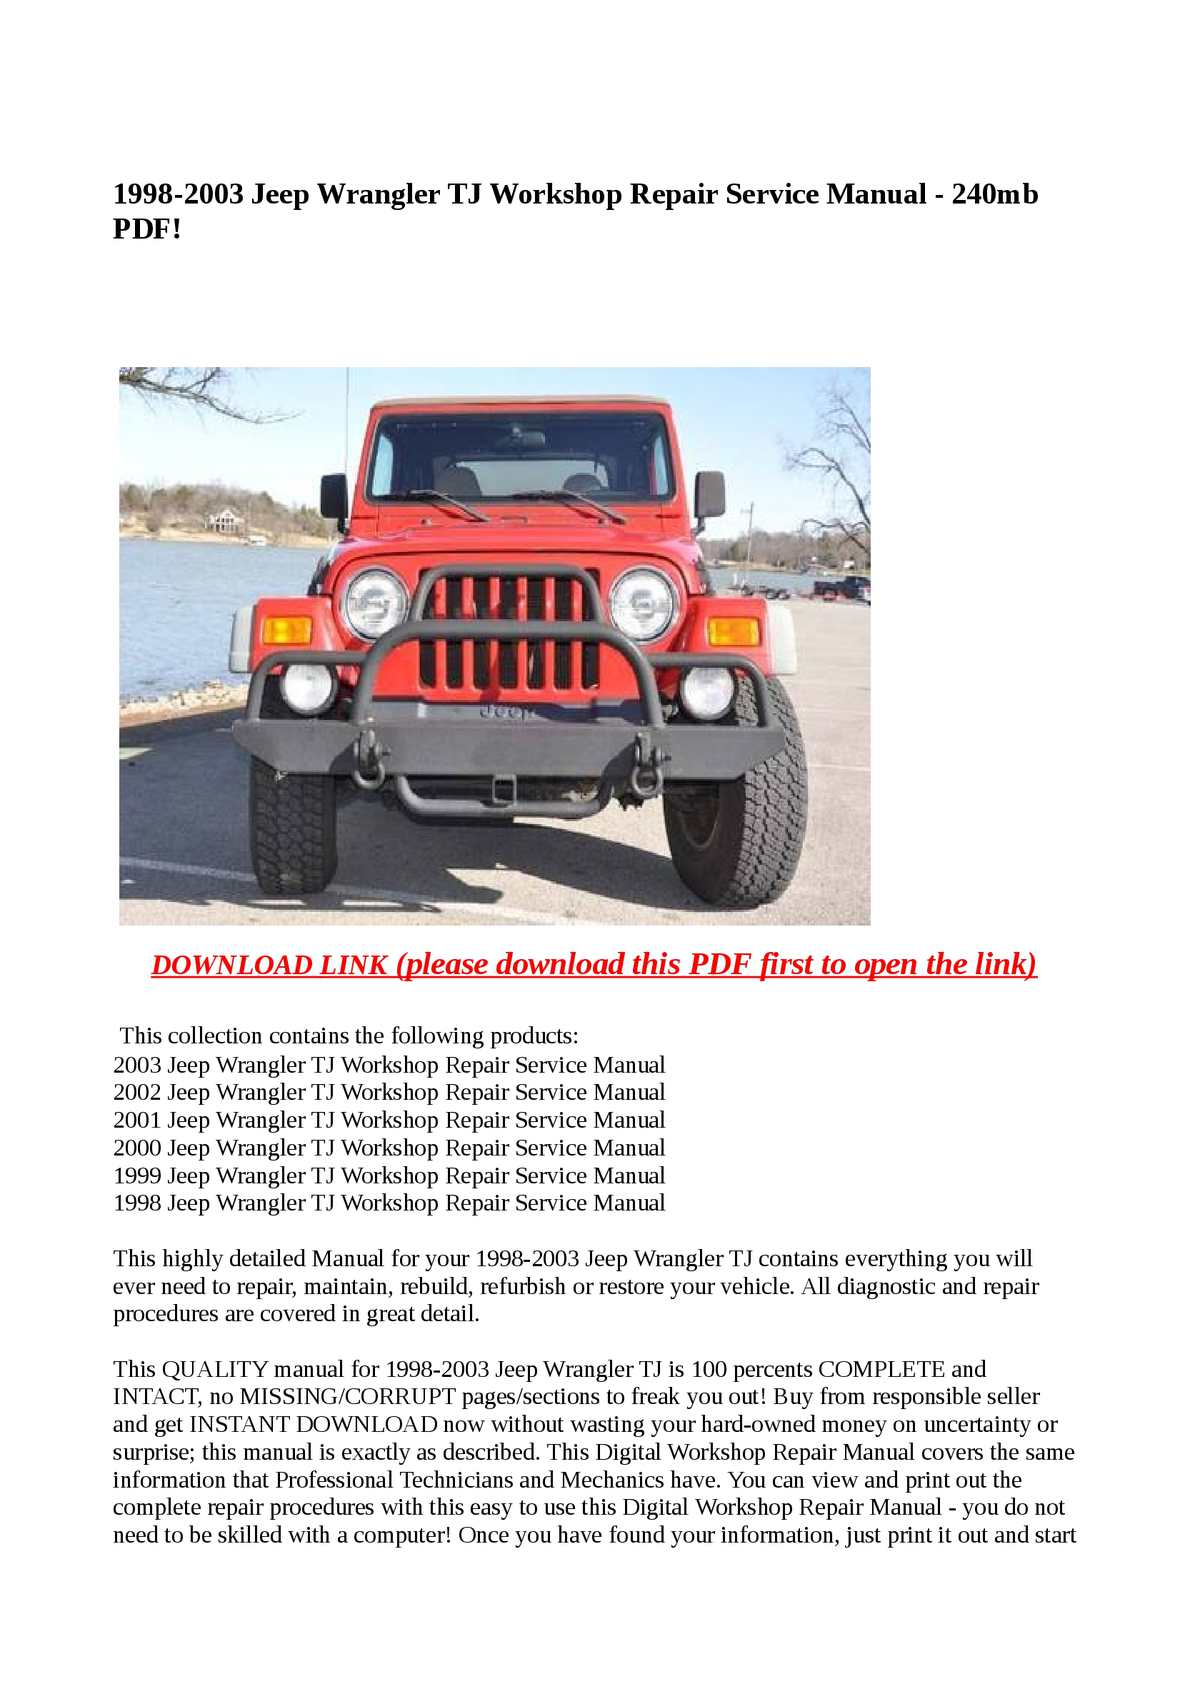 1999 jeep tj wrangler service manual 08. Electrical systems.